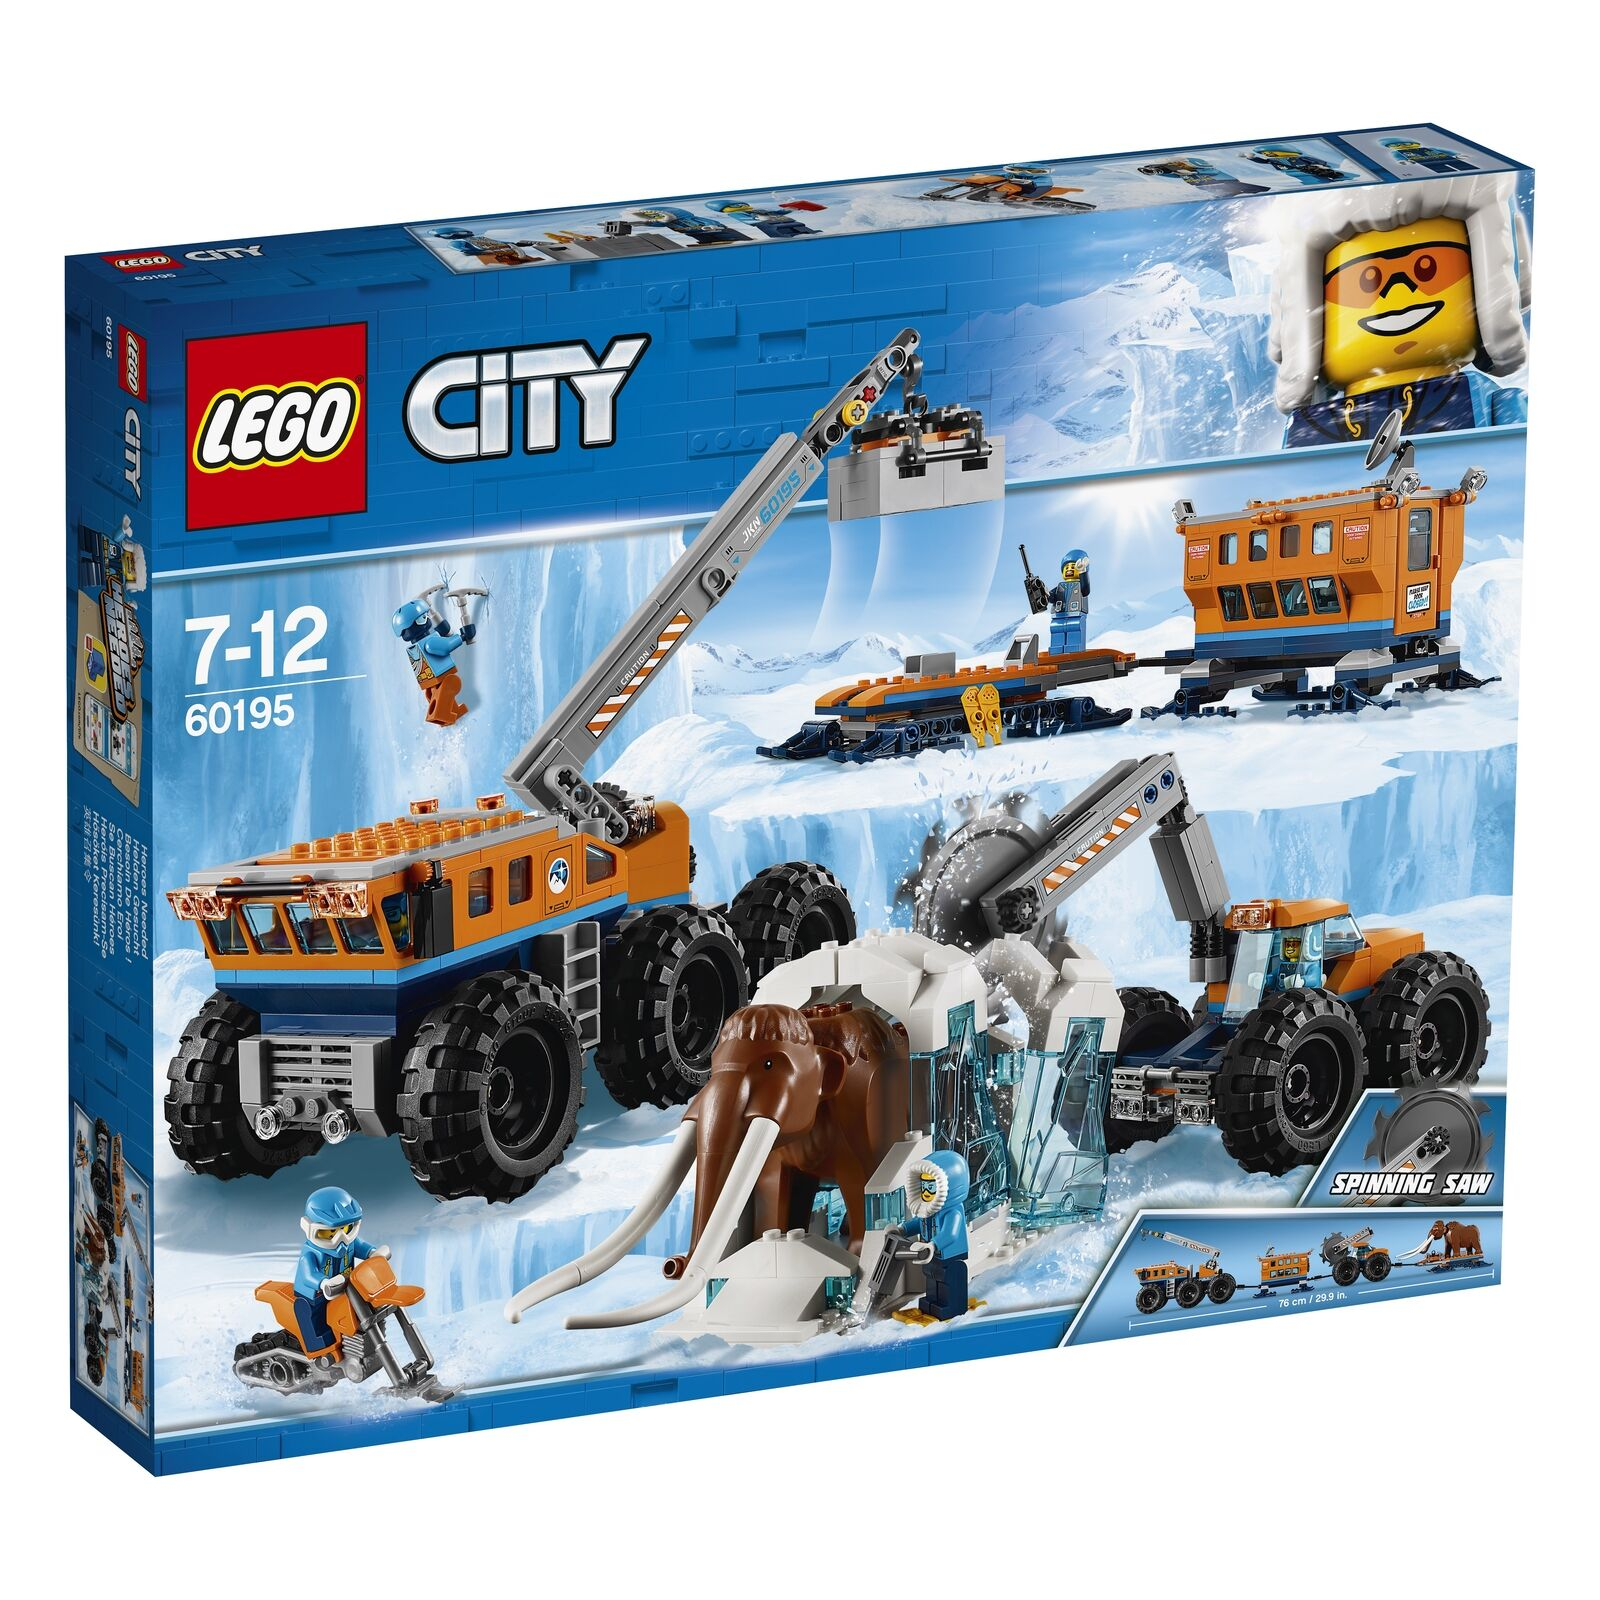 60195 LEGO City Arctic expedition arctique mobile d'exploration base 786Pcs 7 Ans